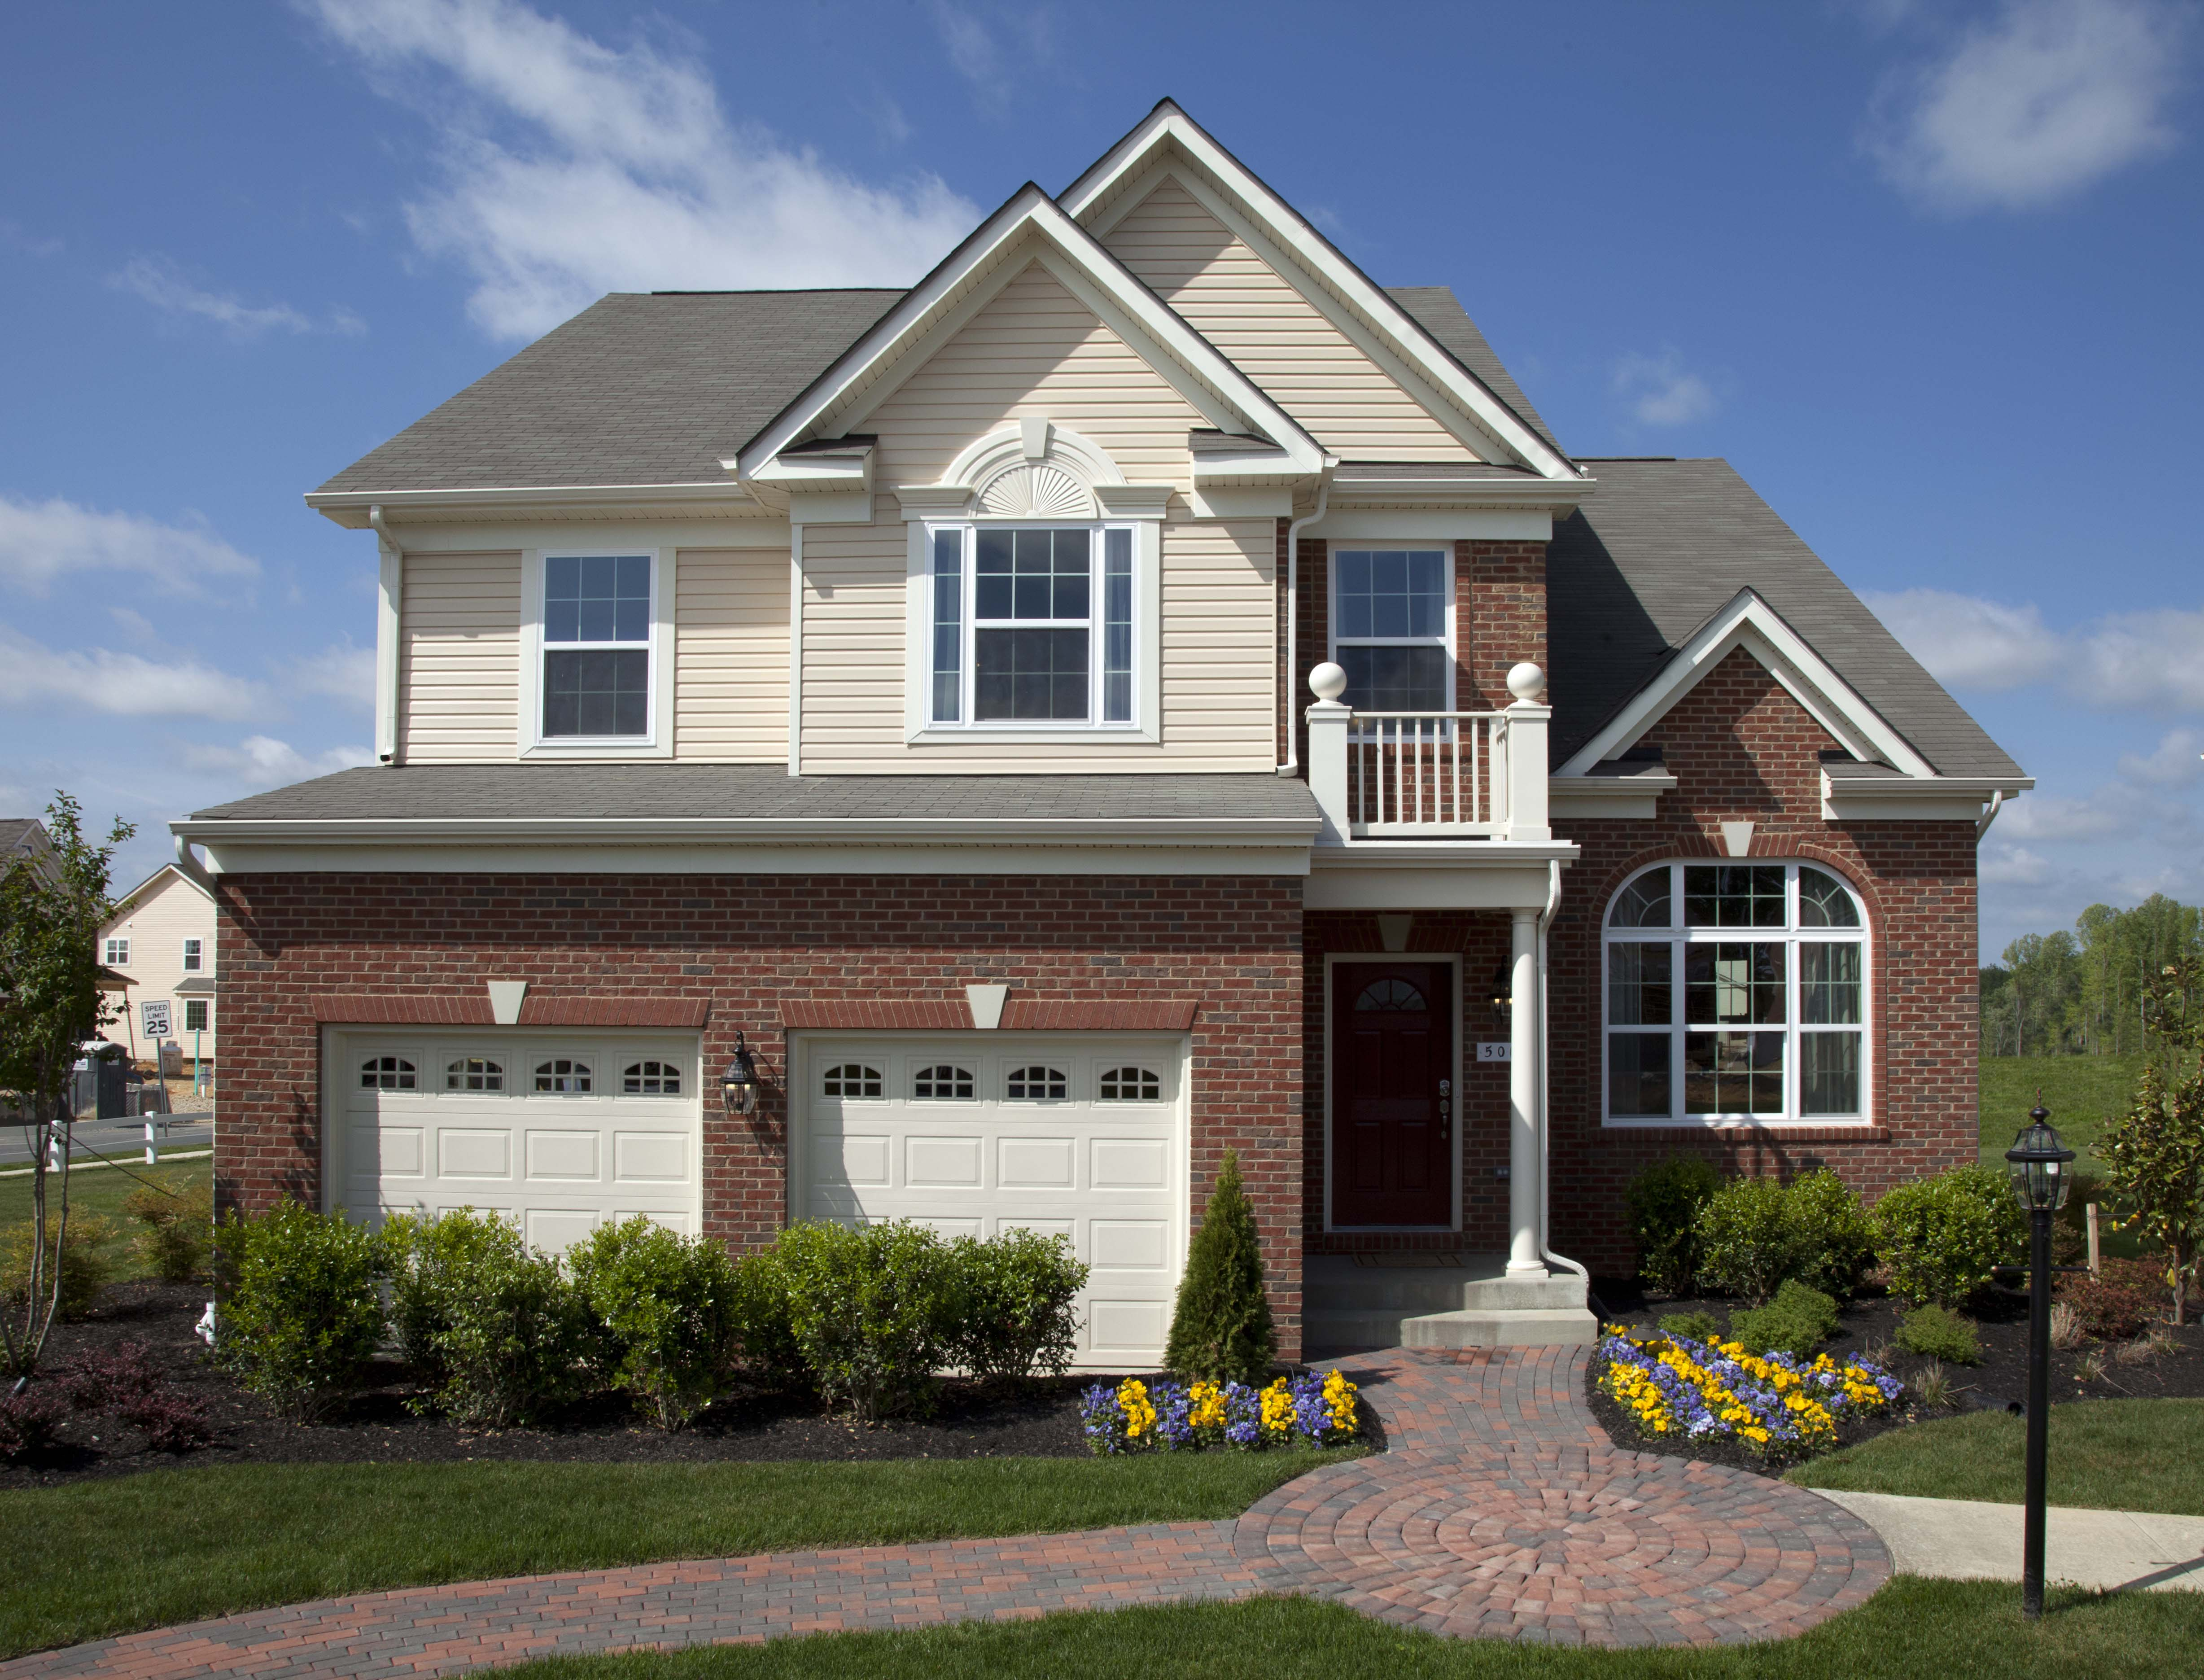 St Charles Md Model Home Fair Announced For Saturday September 14th